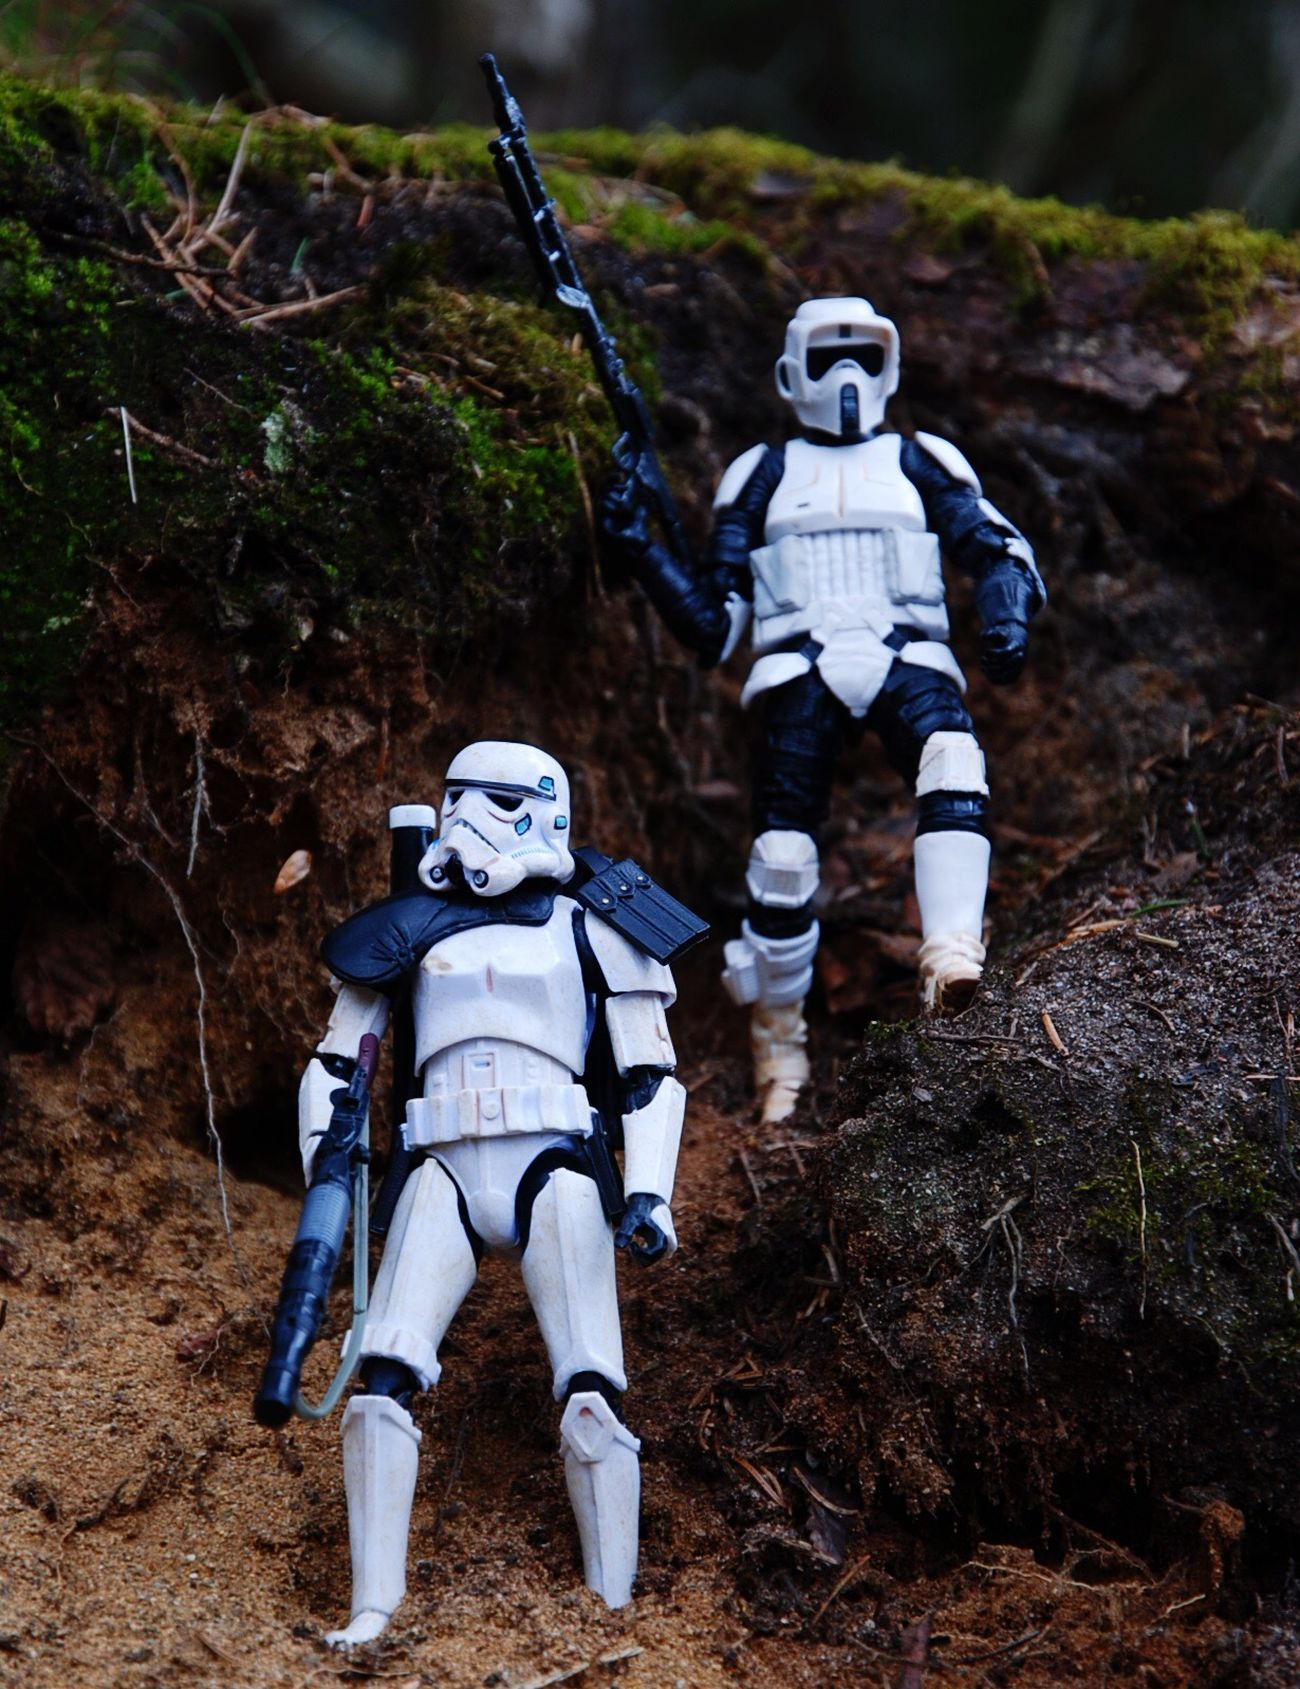 Another shot from my photo session today Blackseries Theblackseries Starwarsblackseries Hasbro Starwars Sandtrooper Scouttrooper